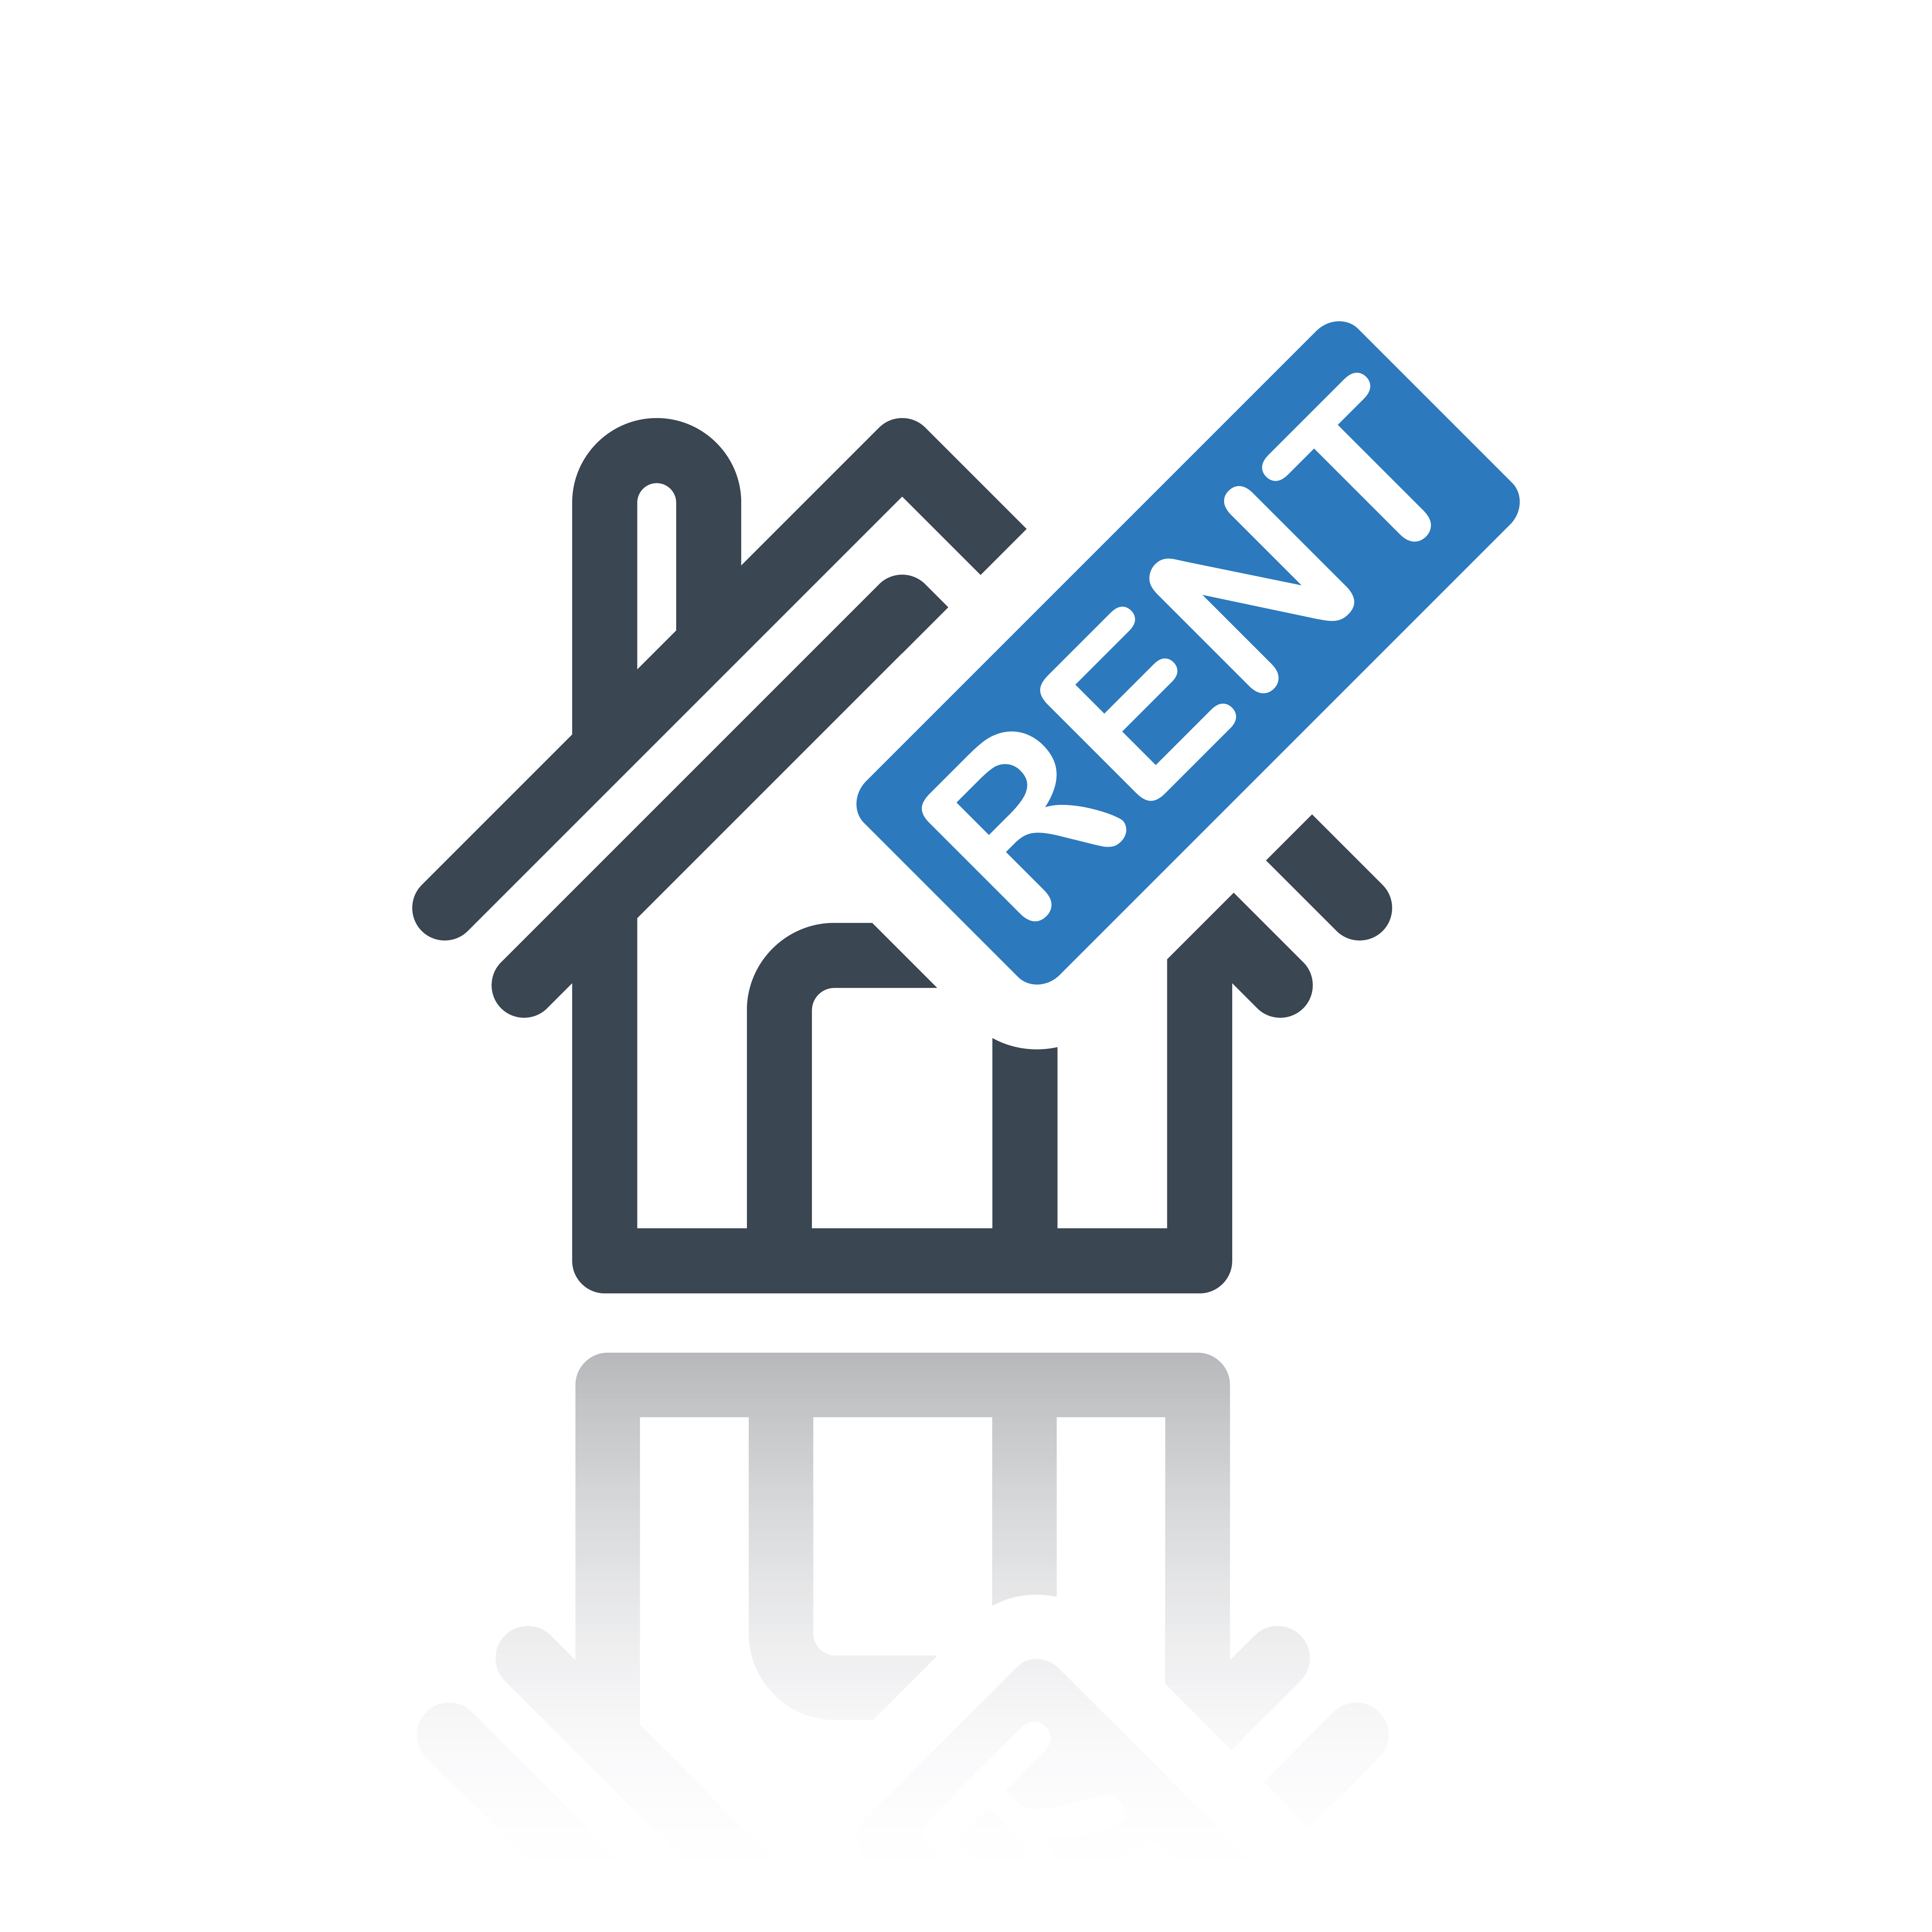 Houses For Rent Local: Online Estate Agents Advertising Houses For Rent UK